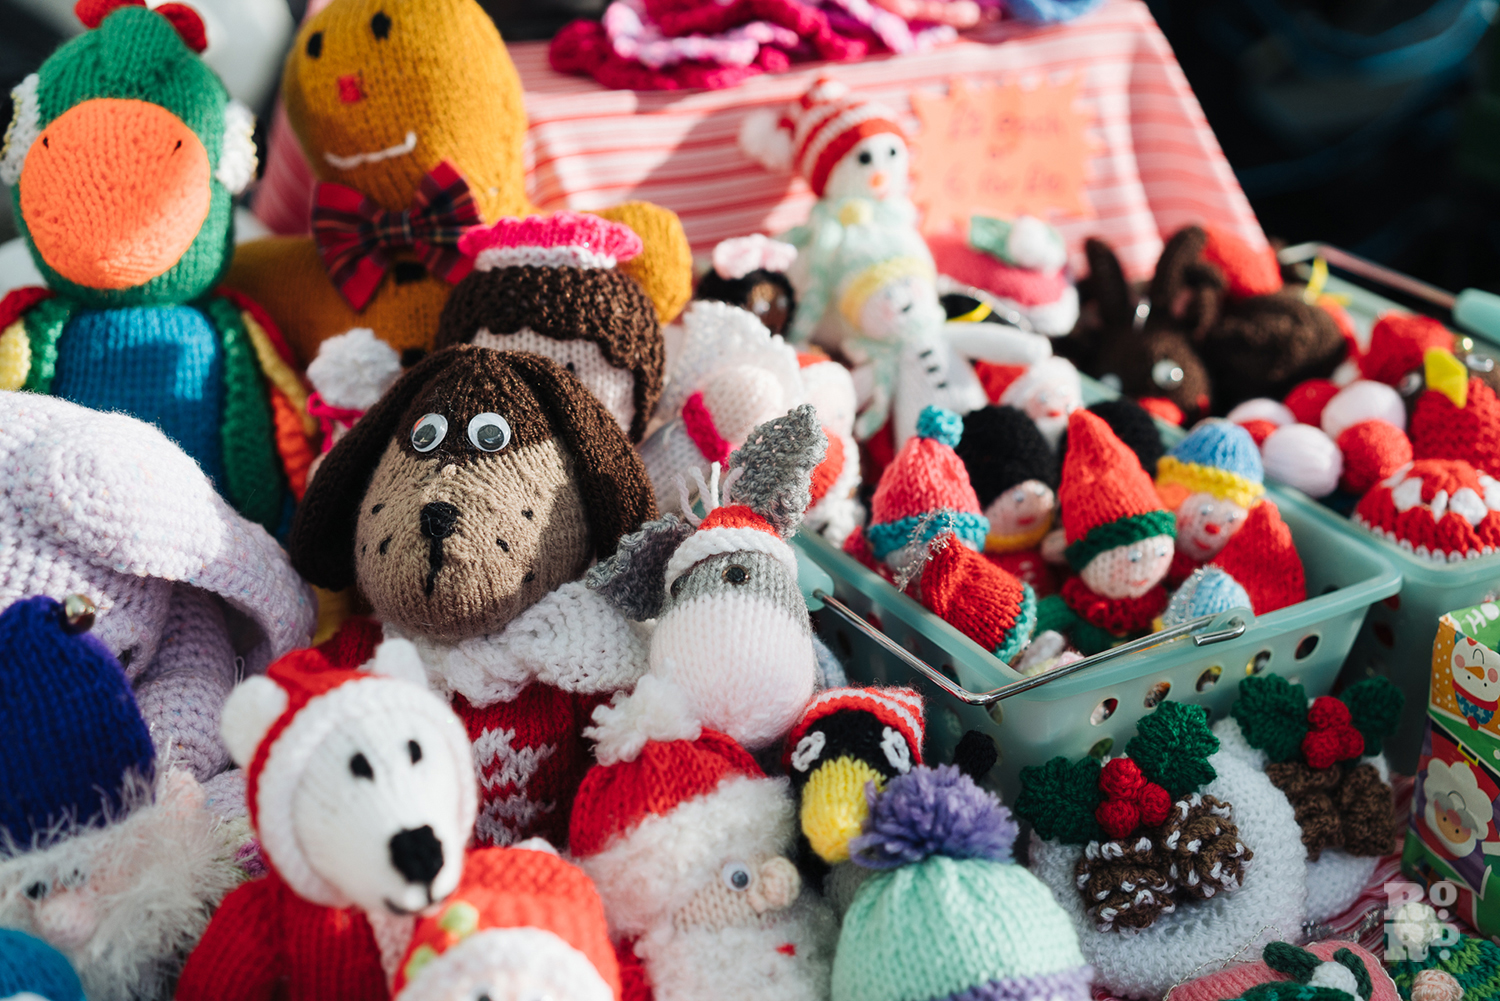 Knitted toys and animals at Roman Road Christmas Fair 2016 © Roman Koblov